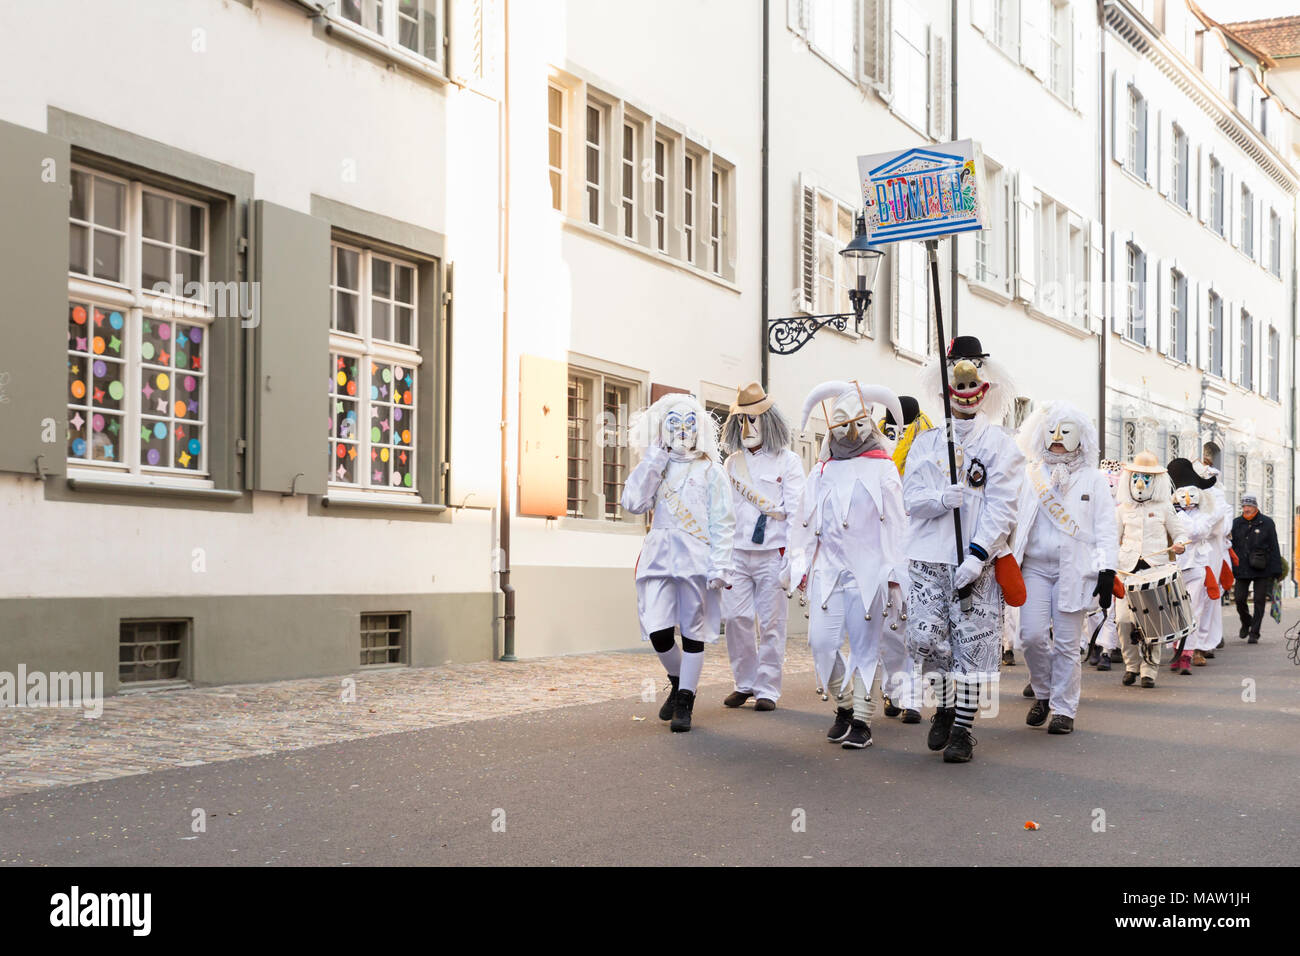 Basel carnival. Augustinergasse, Basel, Switzerland - February 21st, 2018. Carnival group in white costumes in the old town - Stock Image